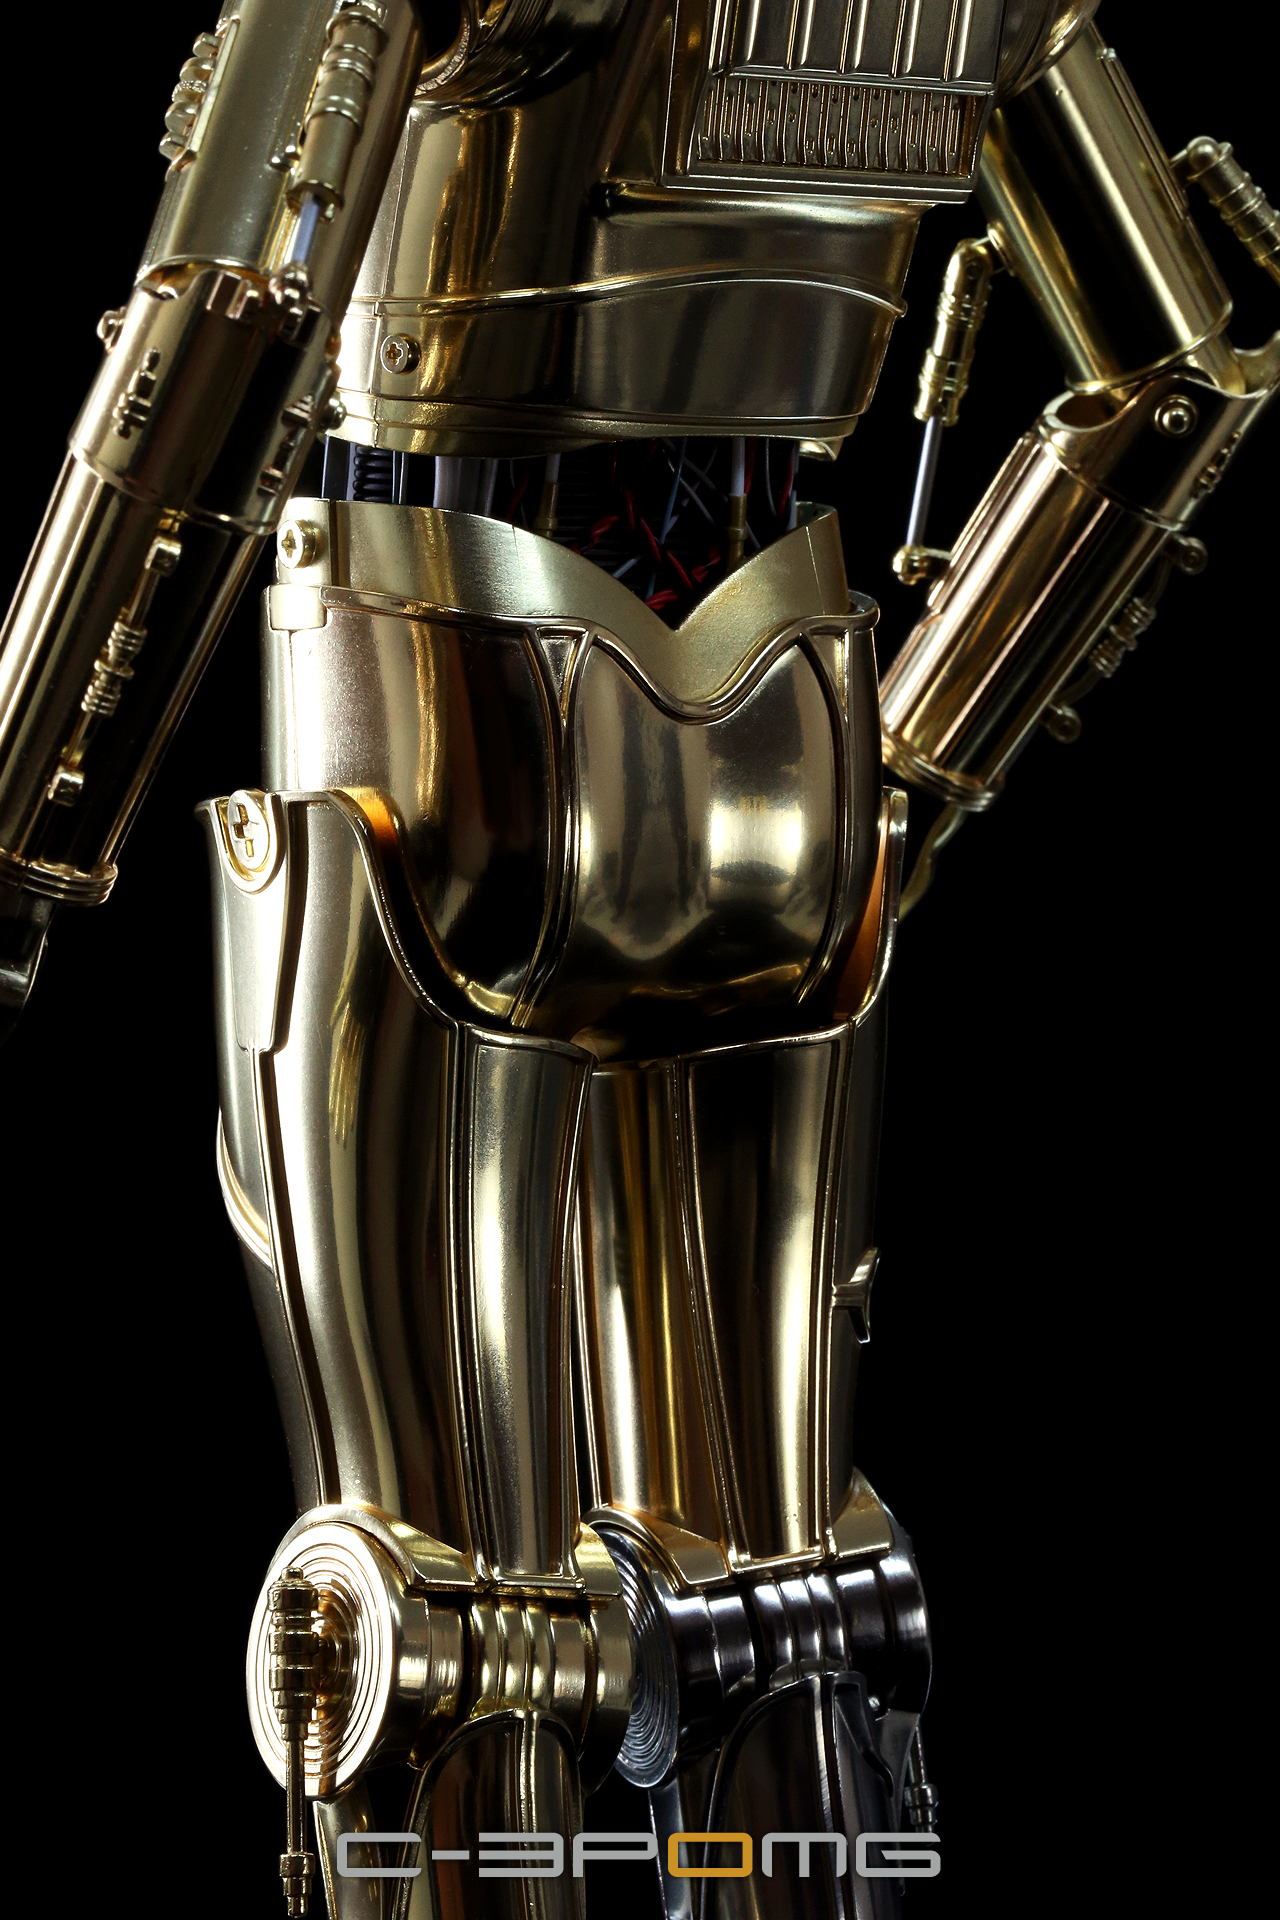 [Bandai] Star Wars: C-3PO - Perfect Model 1/6 scale - LANÇADO!!! - Página 2 C-3PO1133_zpsf5e73cf1